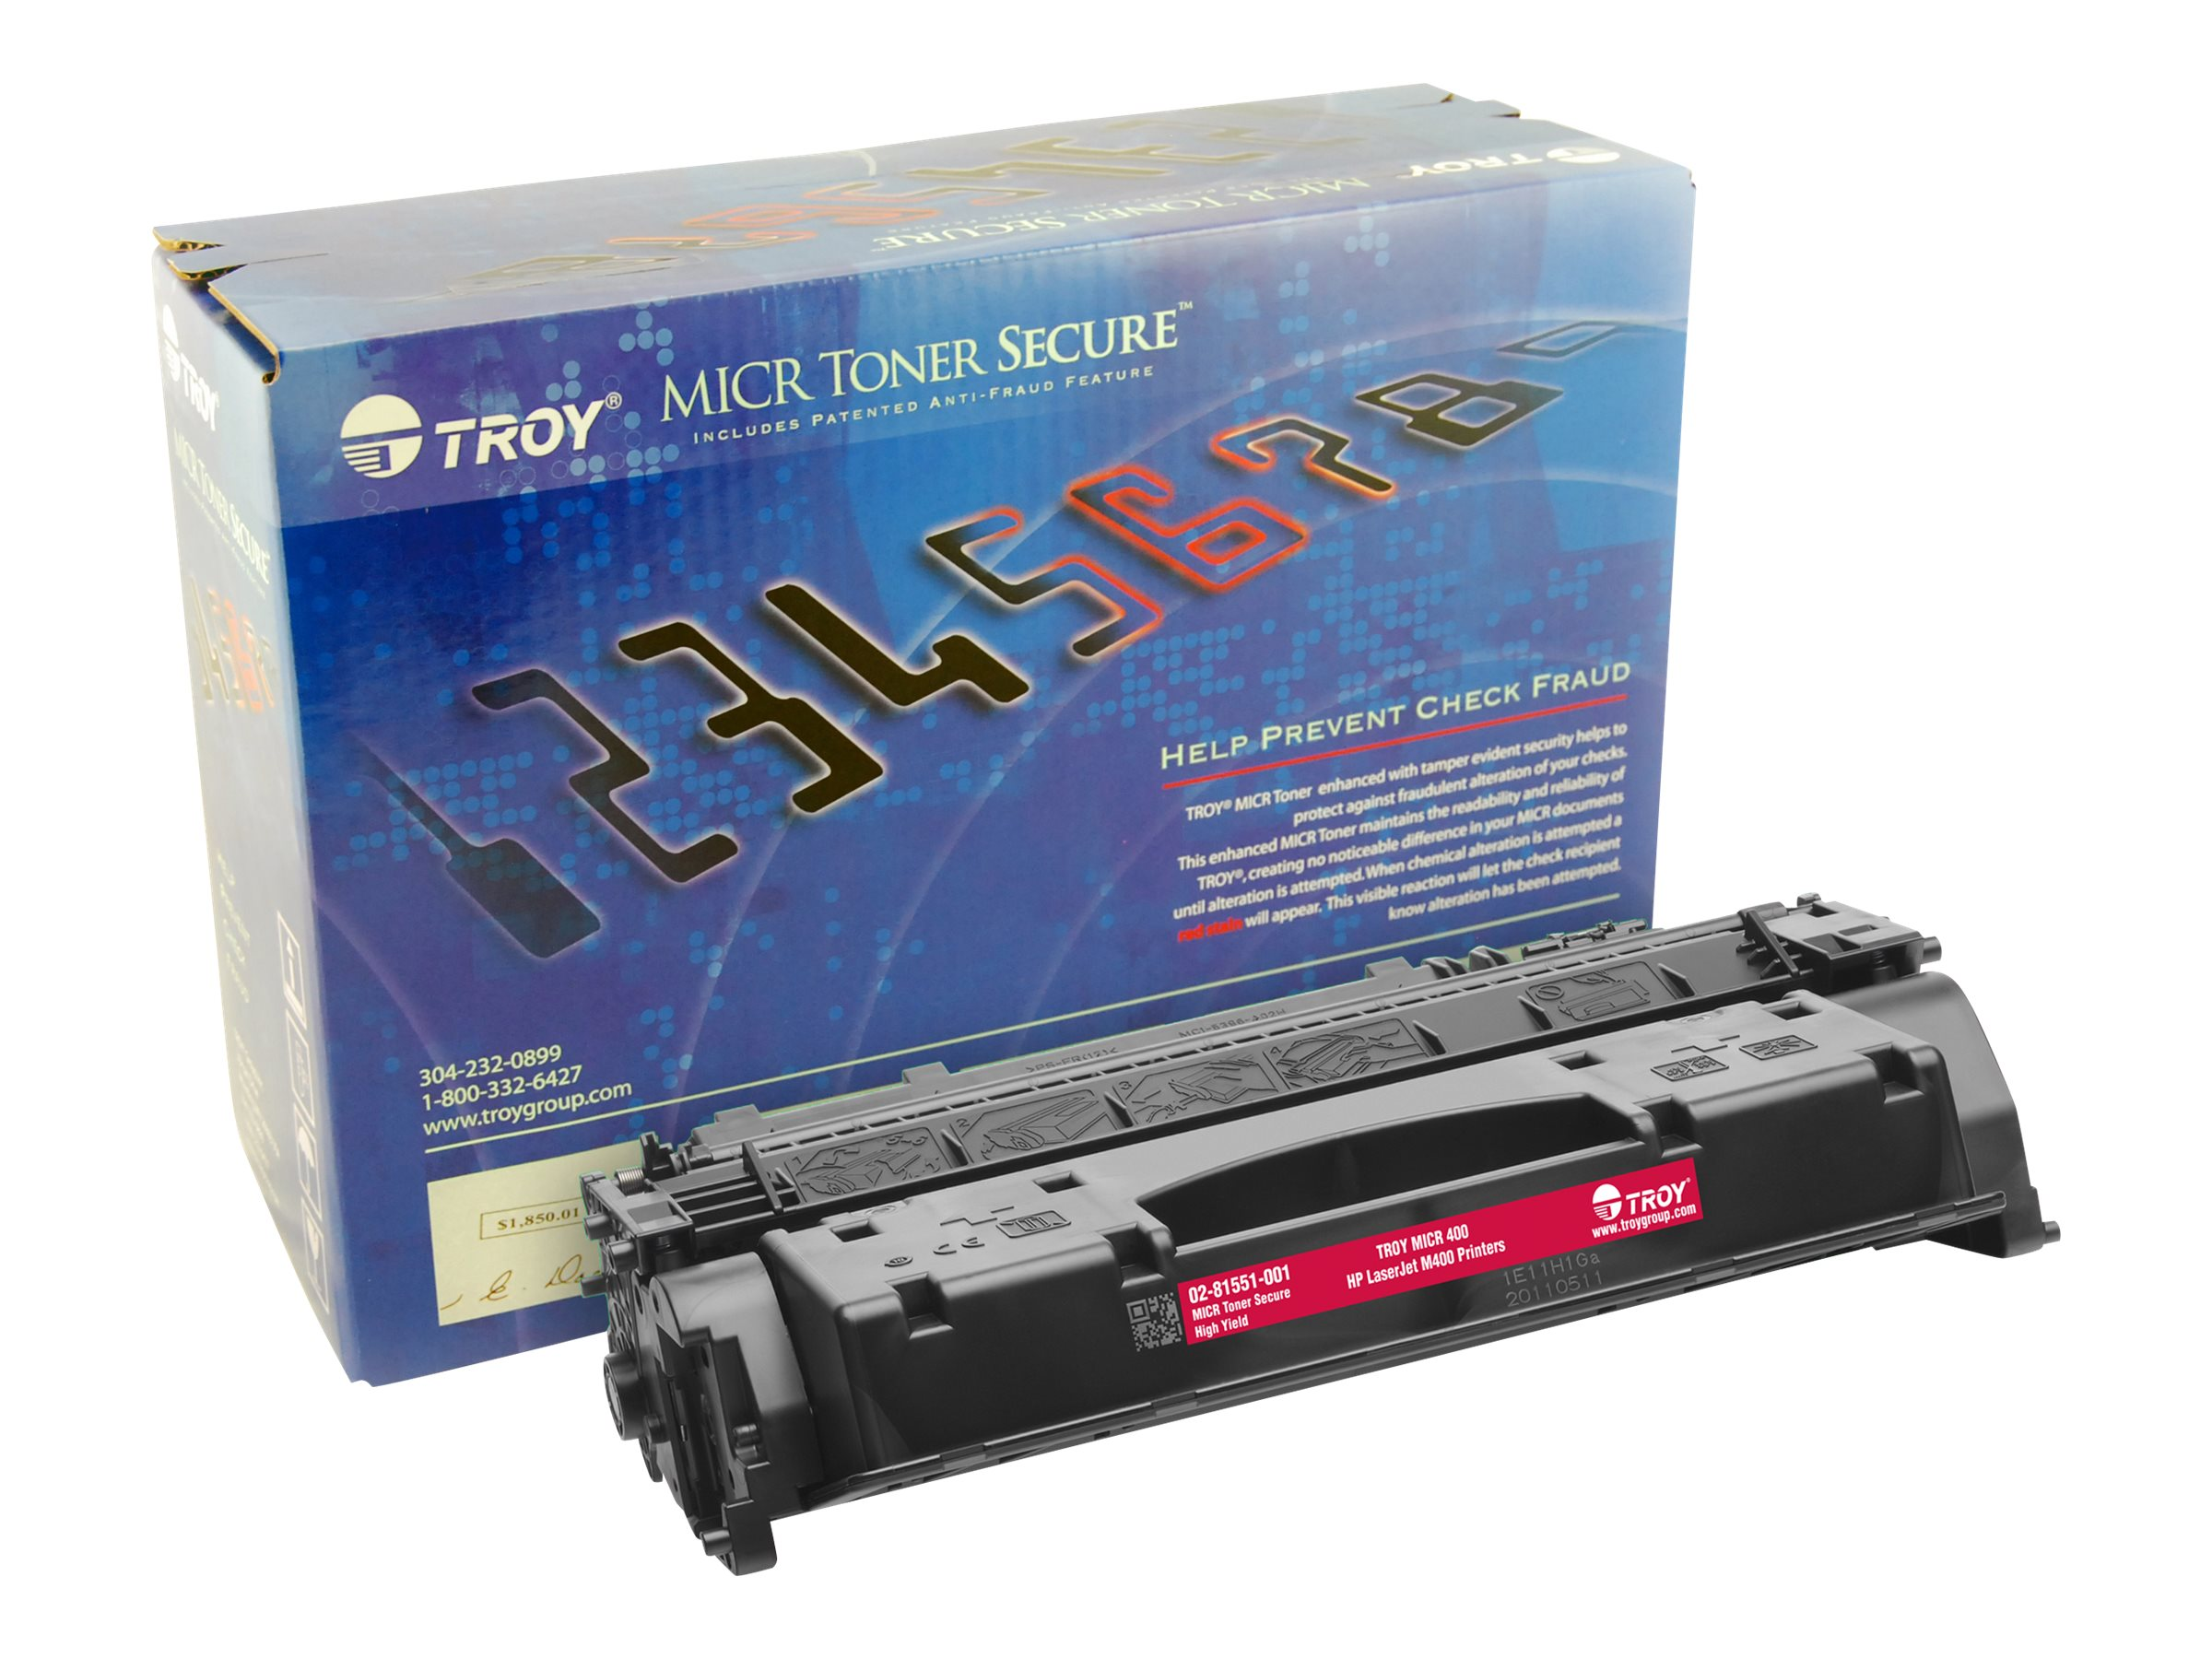 Troy Black M400 MICR Secure High Yield Toner Cartridge